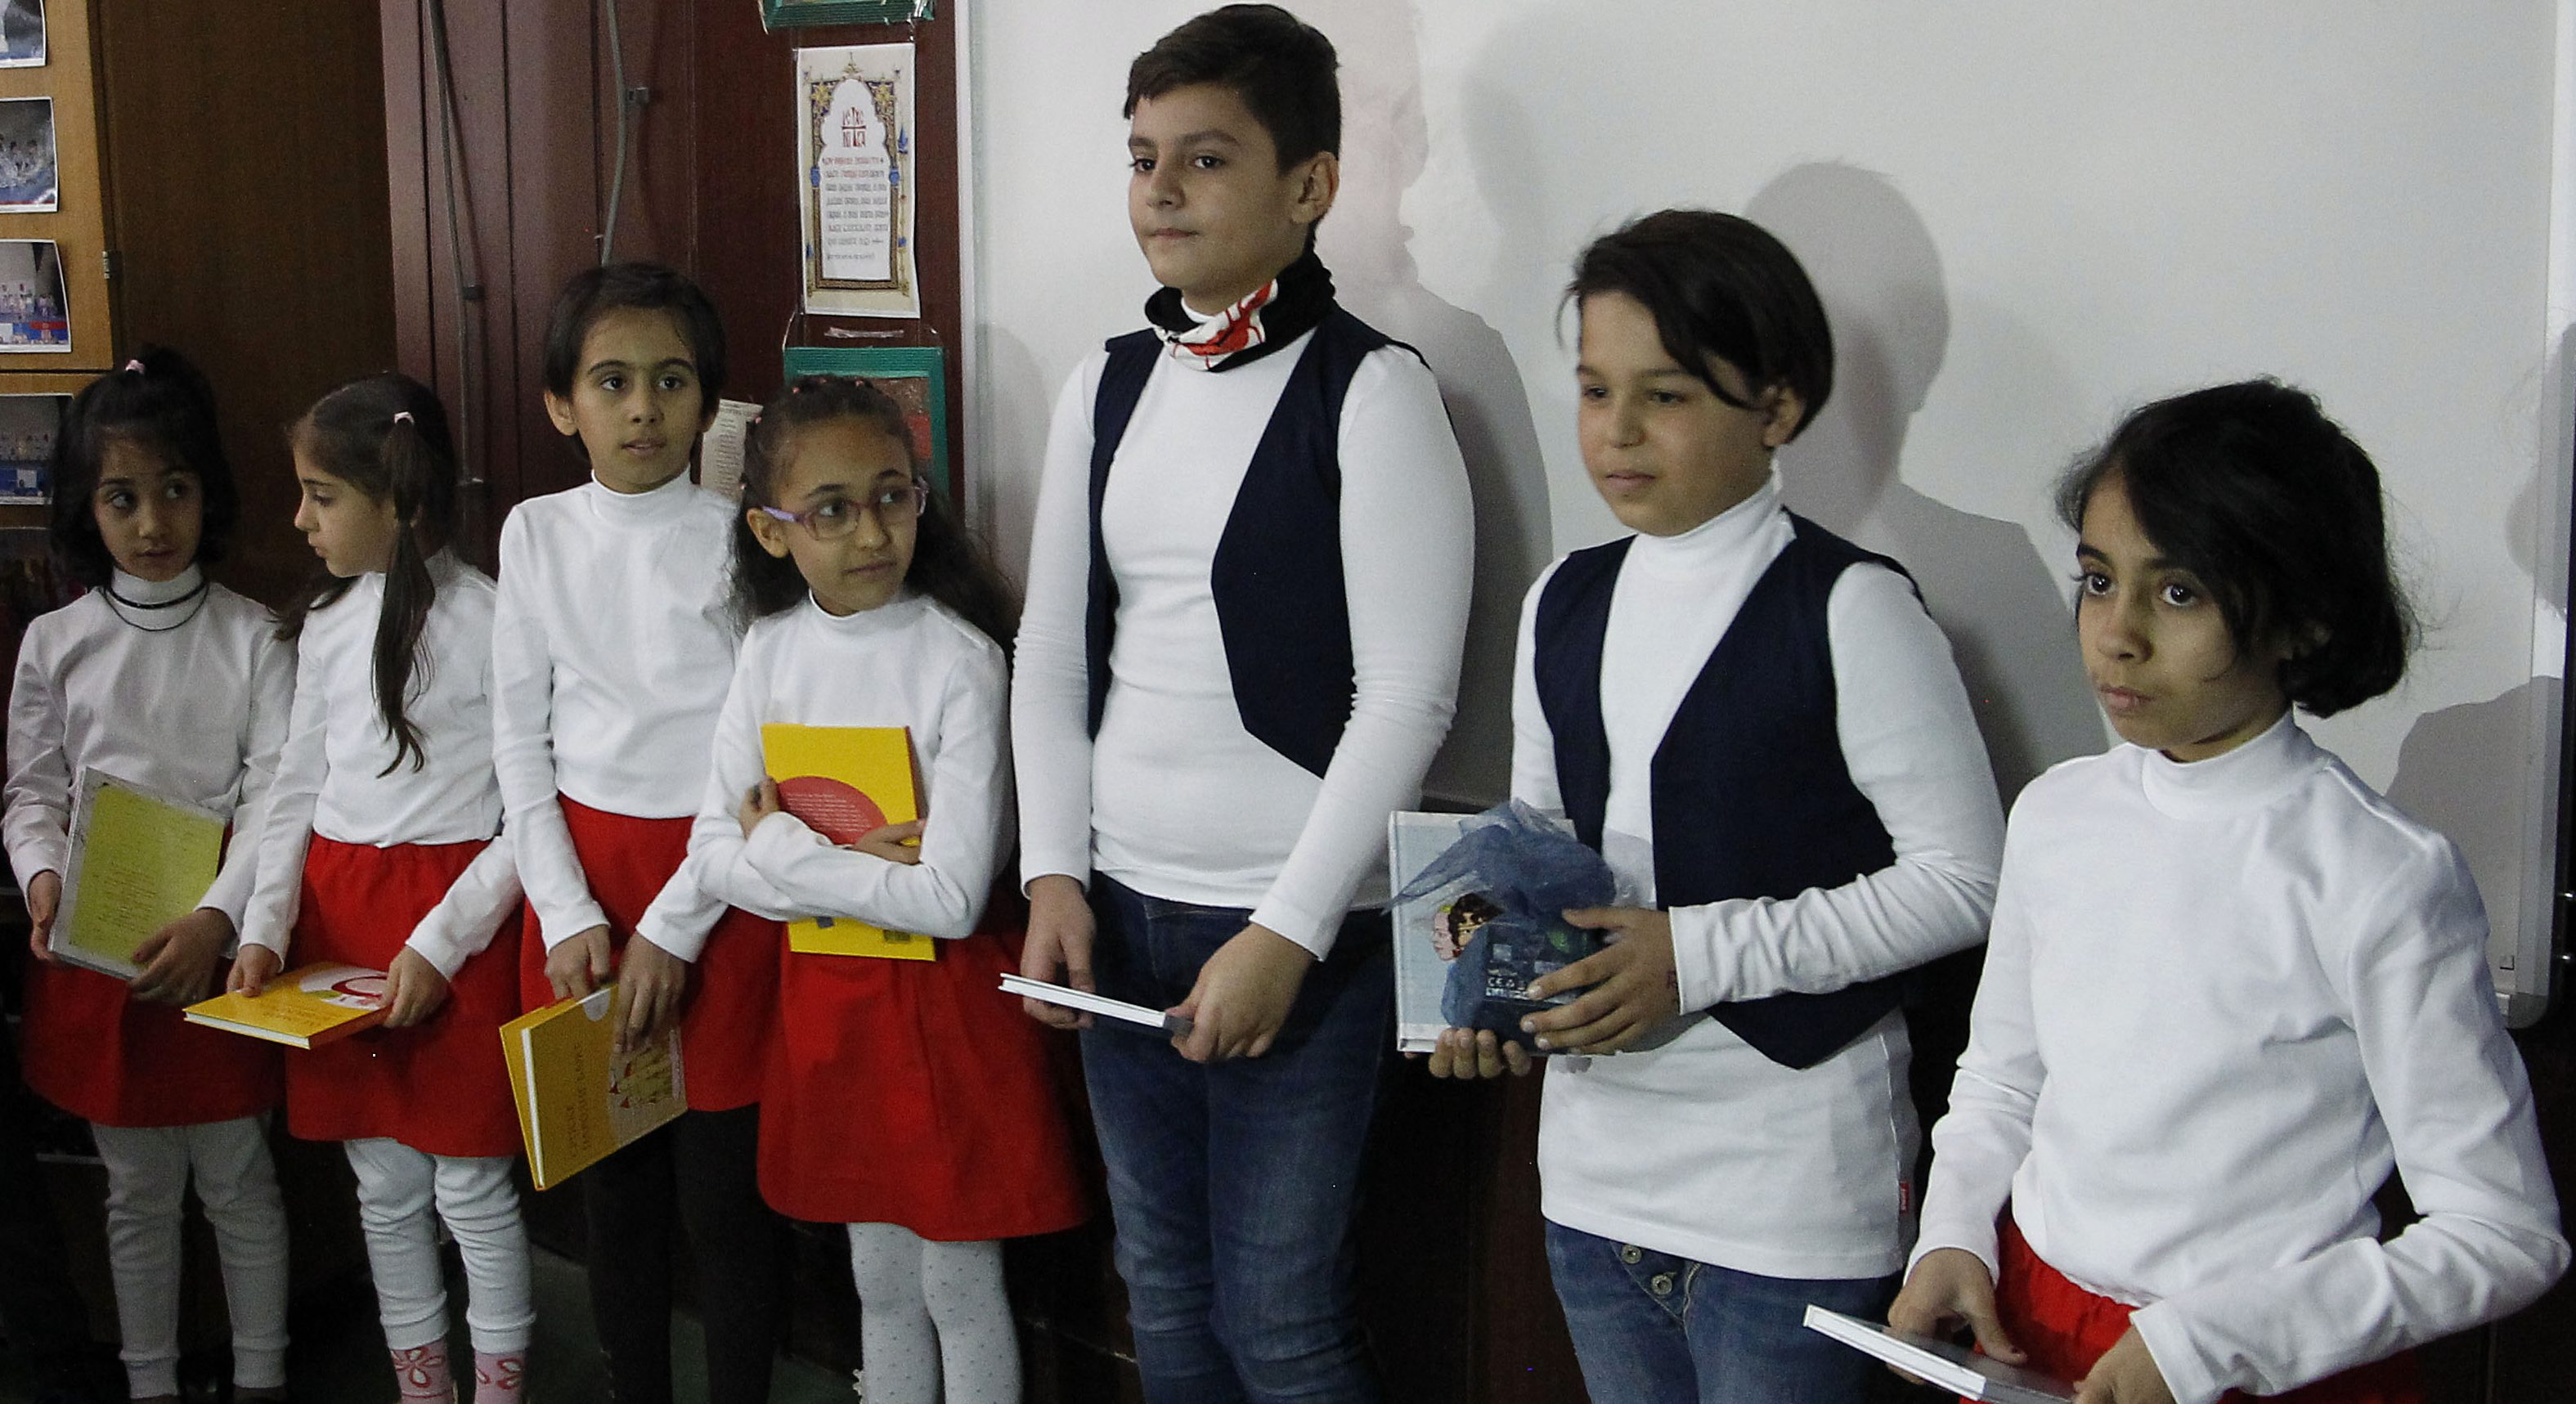 International Migrants Day marked in Bujanovac with a children's event